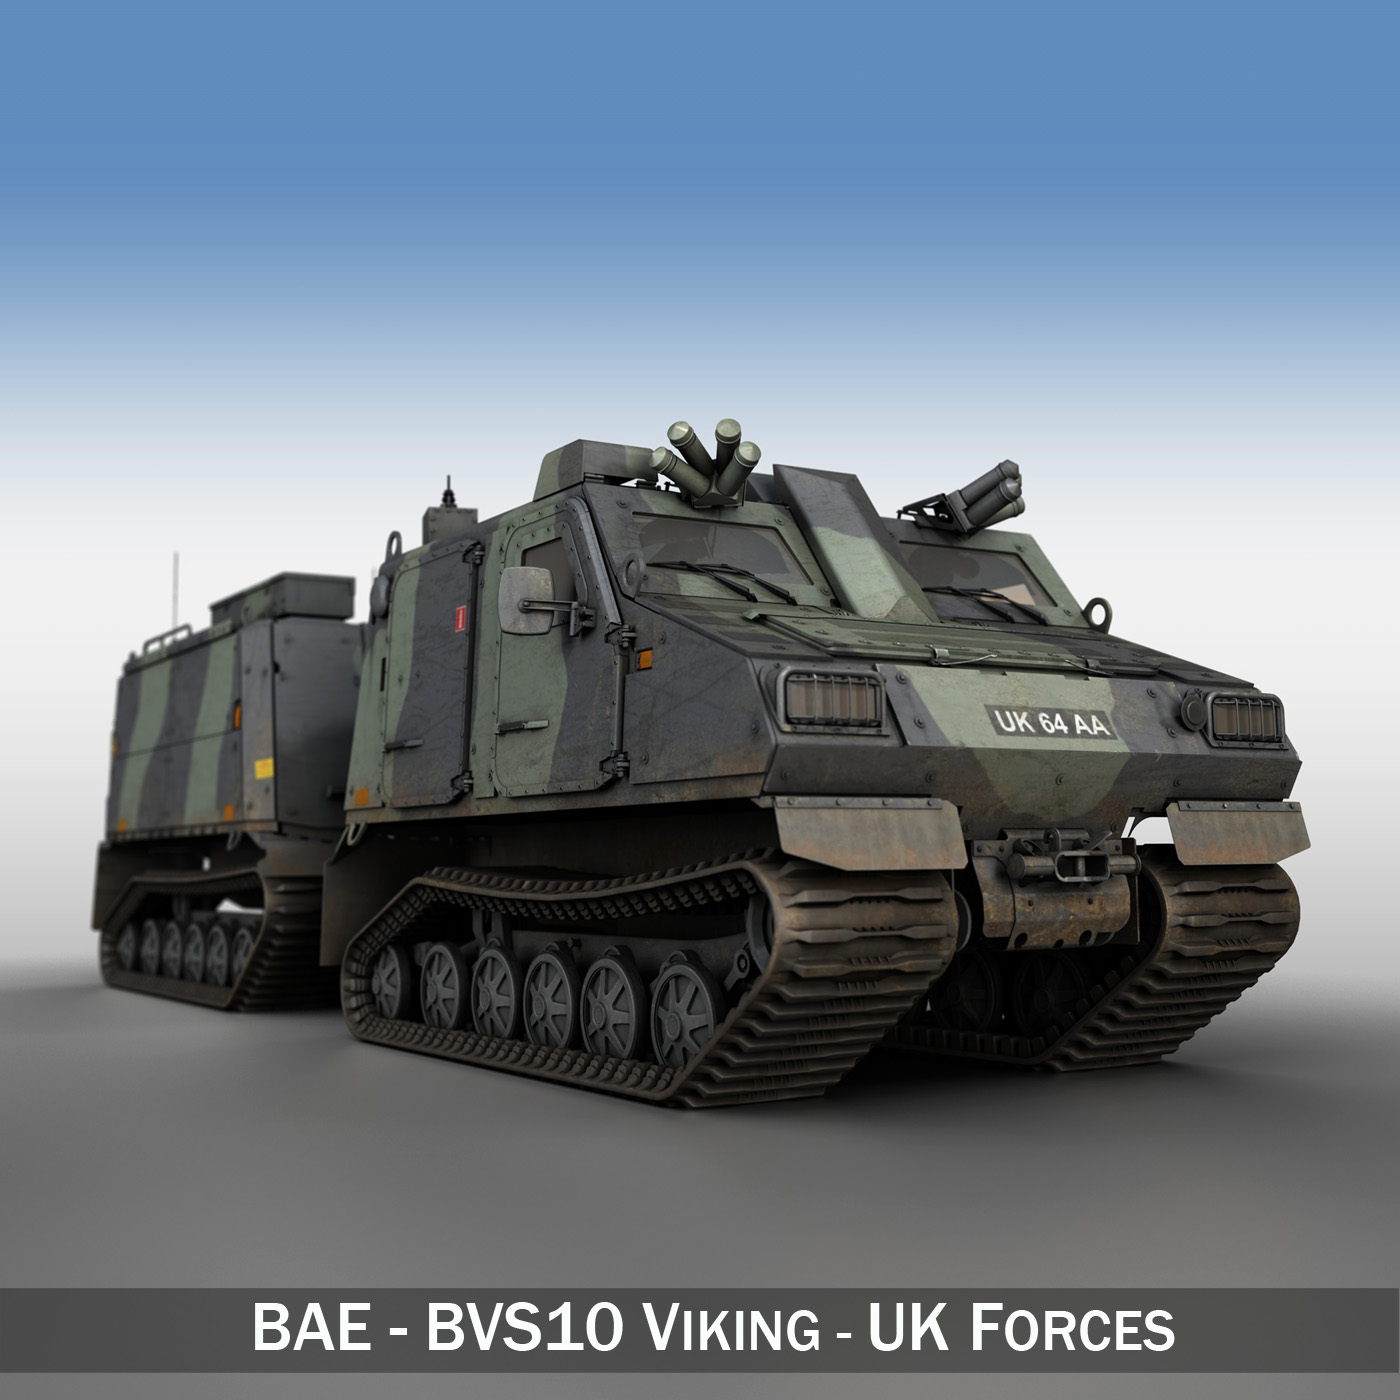 bvs10 viking - uk snage 3d model 3ds c4d tekstura obj 264249